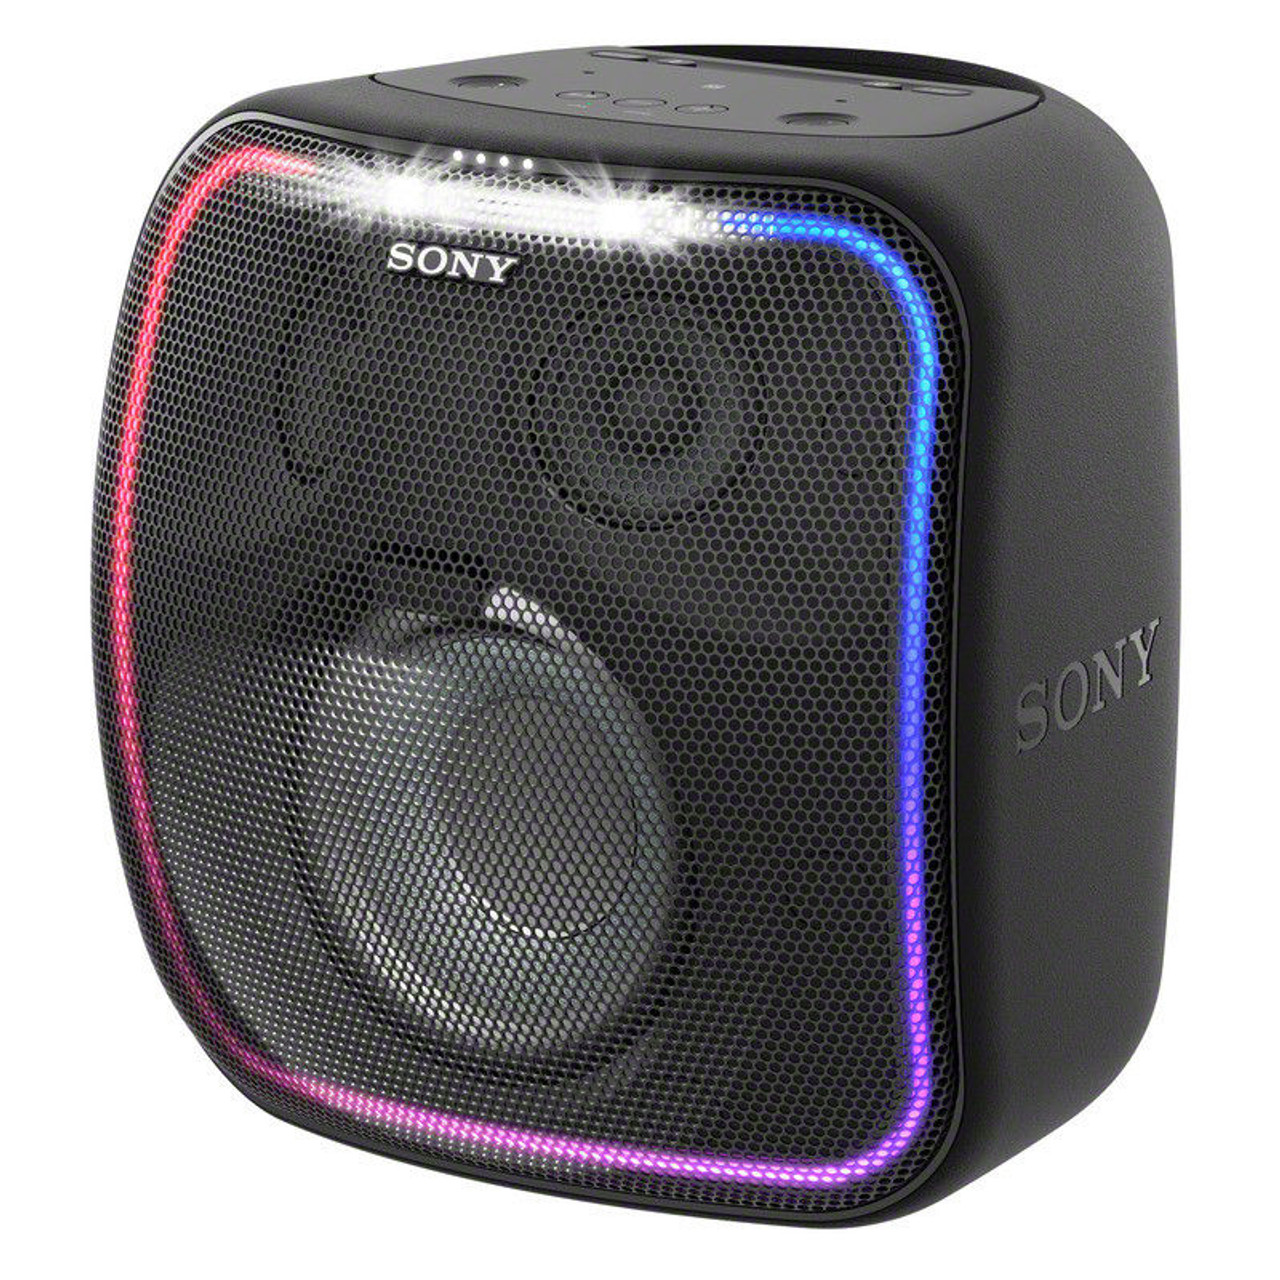 Sony SRS-XB501G Extra Bass Google Assistant Bluetooth Speaker - Black